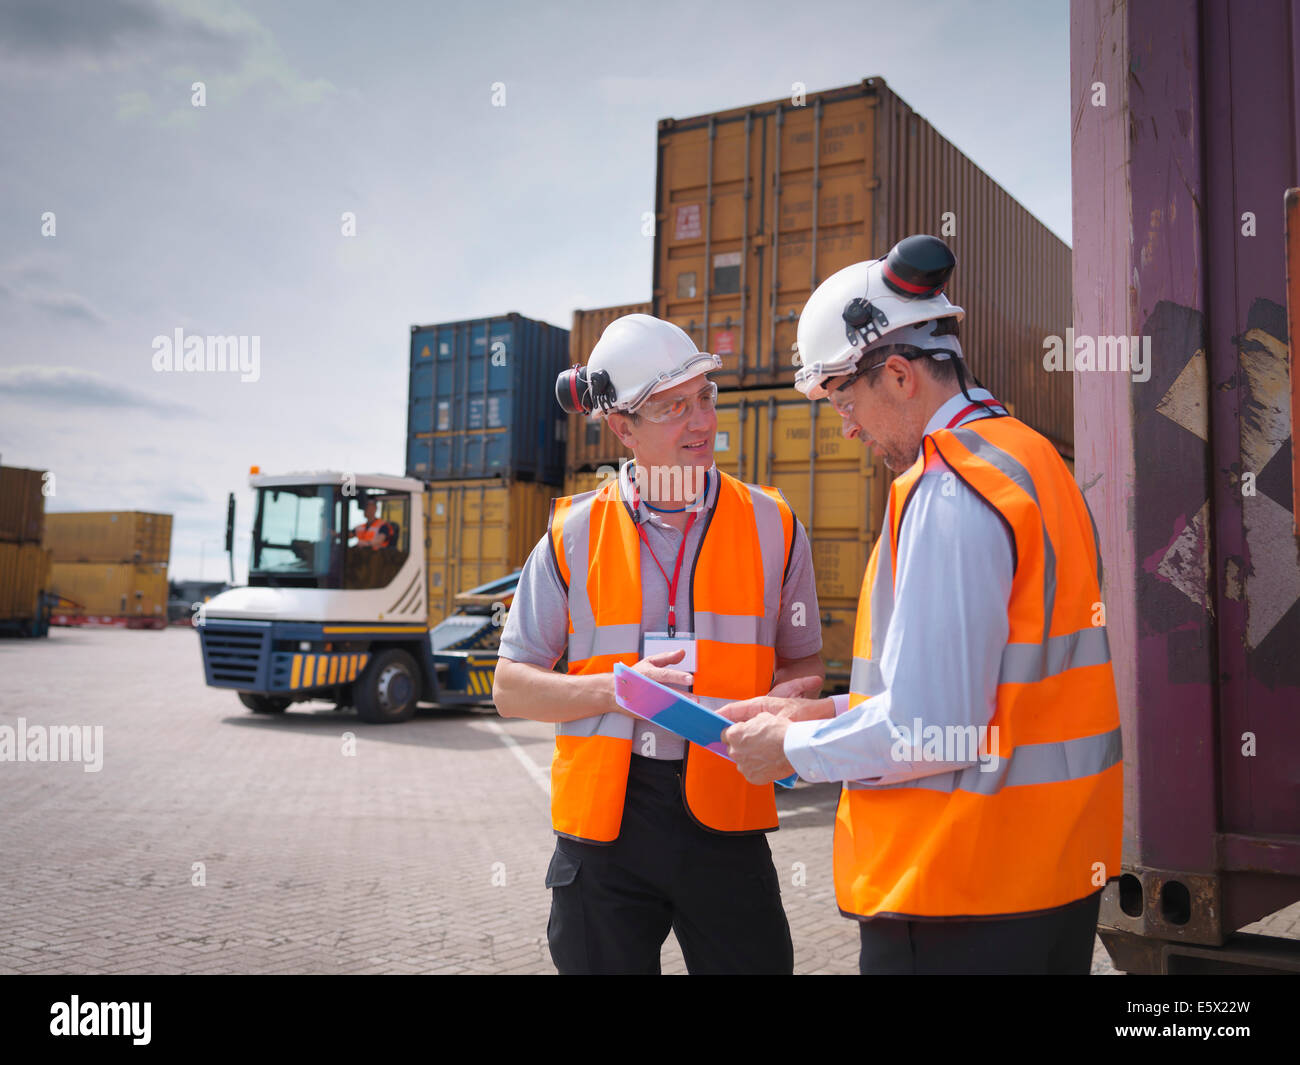 Port workers and shipping containers in port - Stock Image